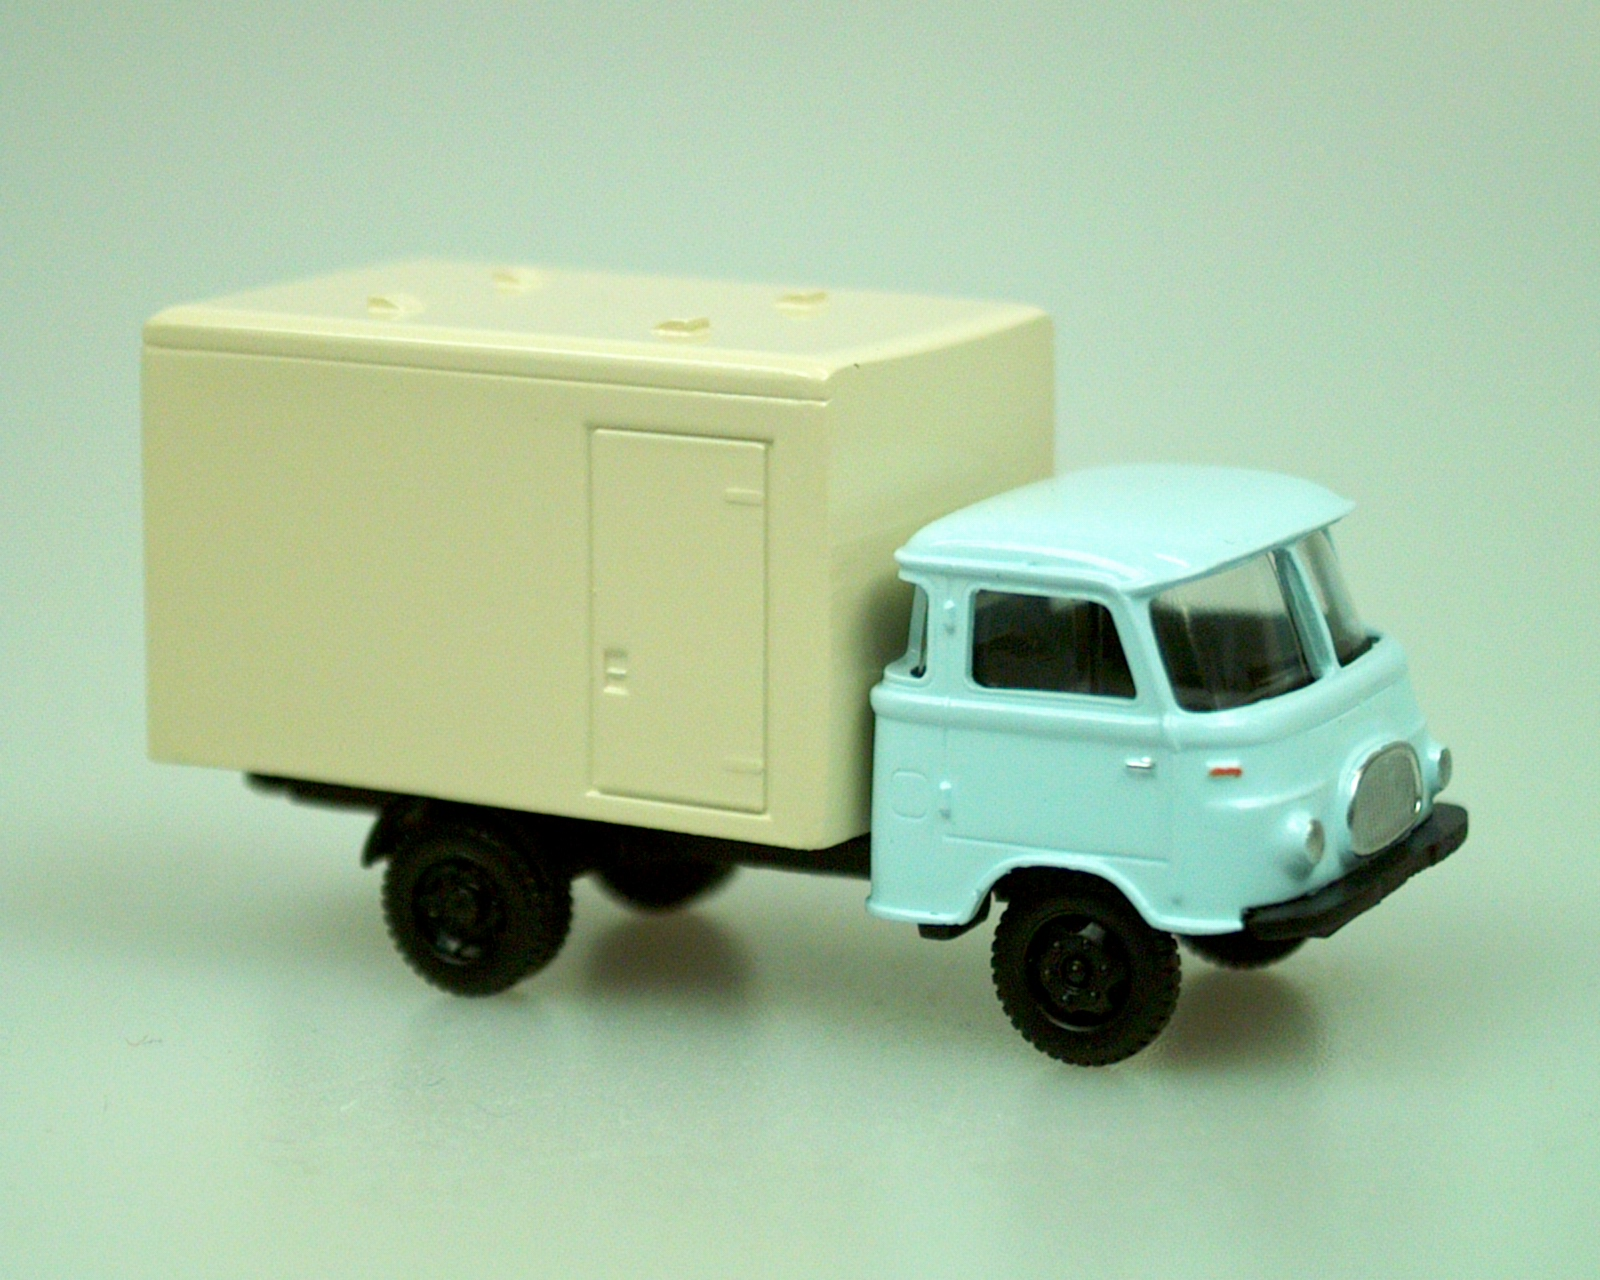 1961 Robur Lo2500 Isotherm Van (light blue/ivory)